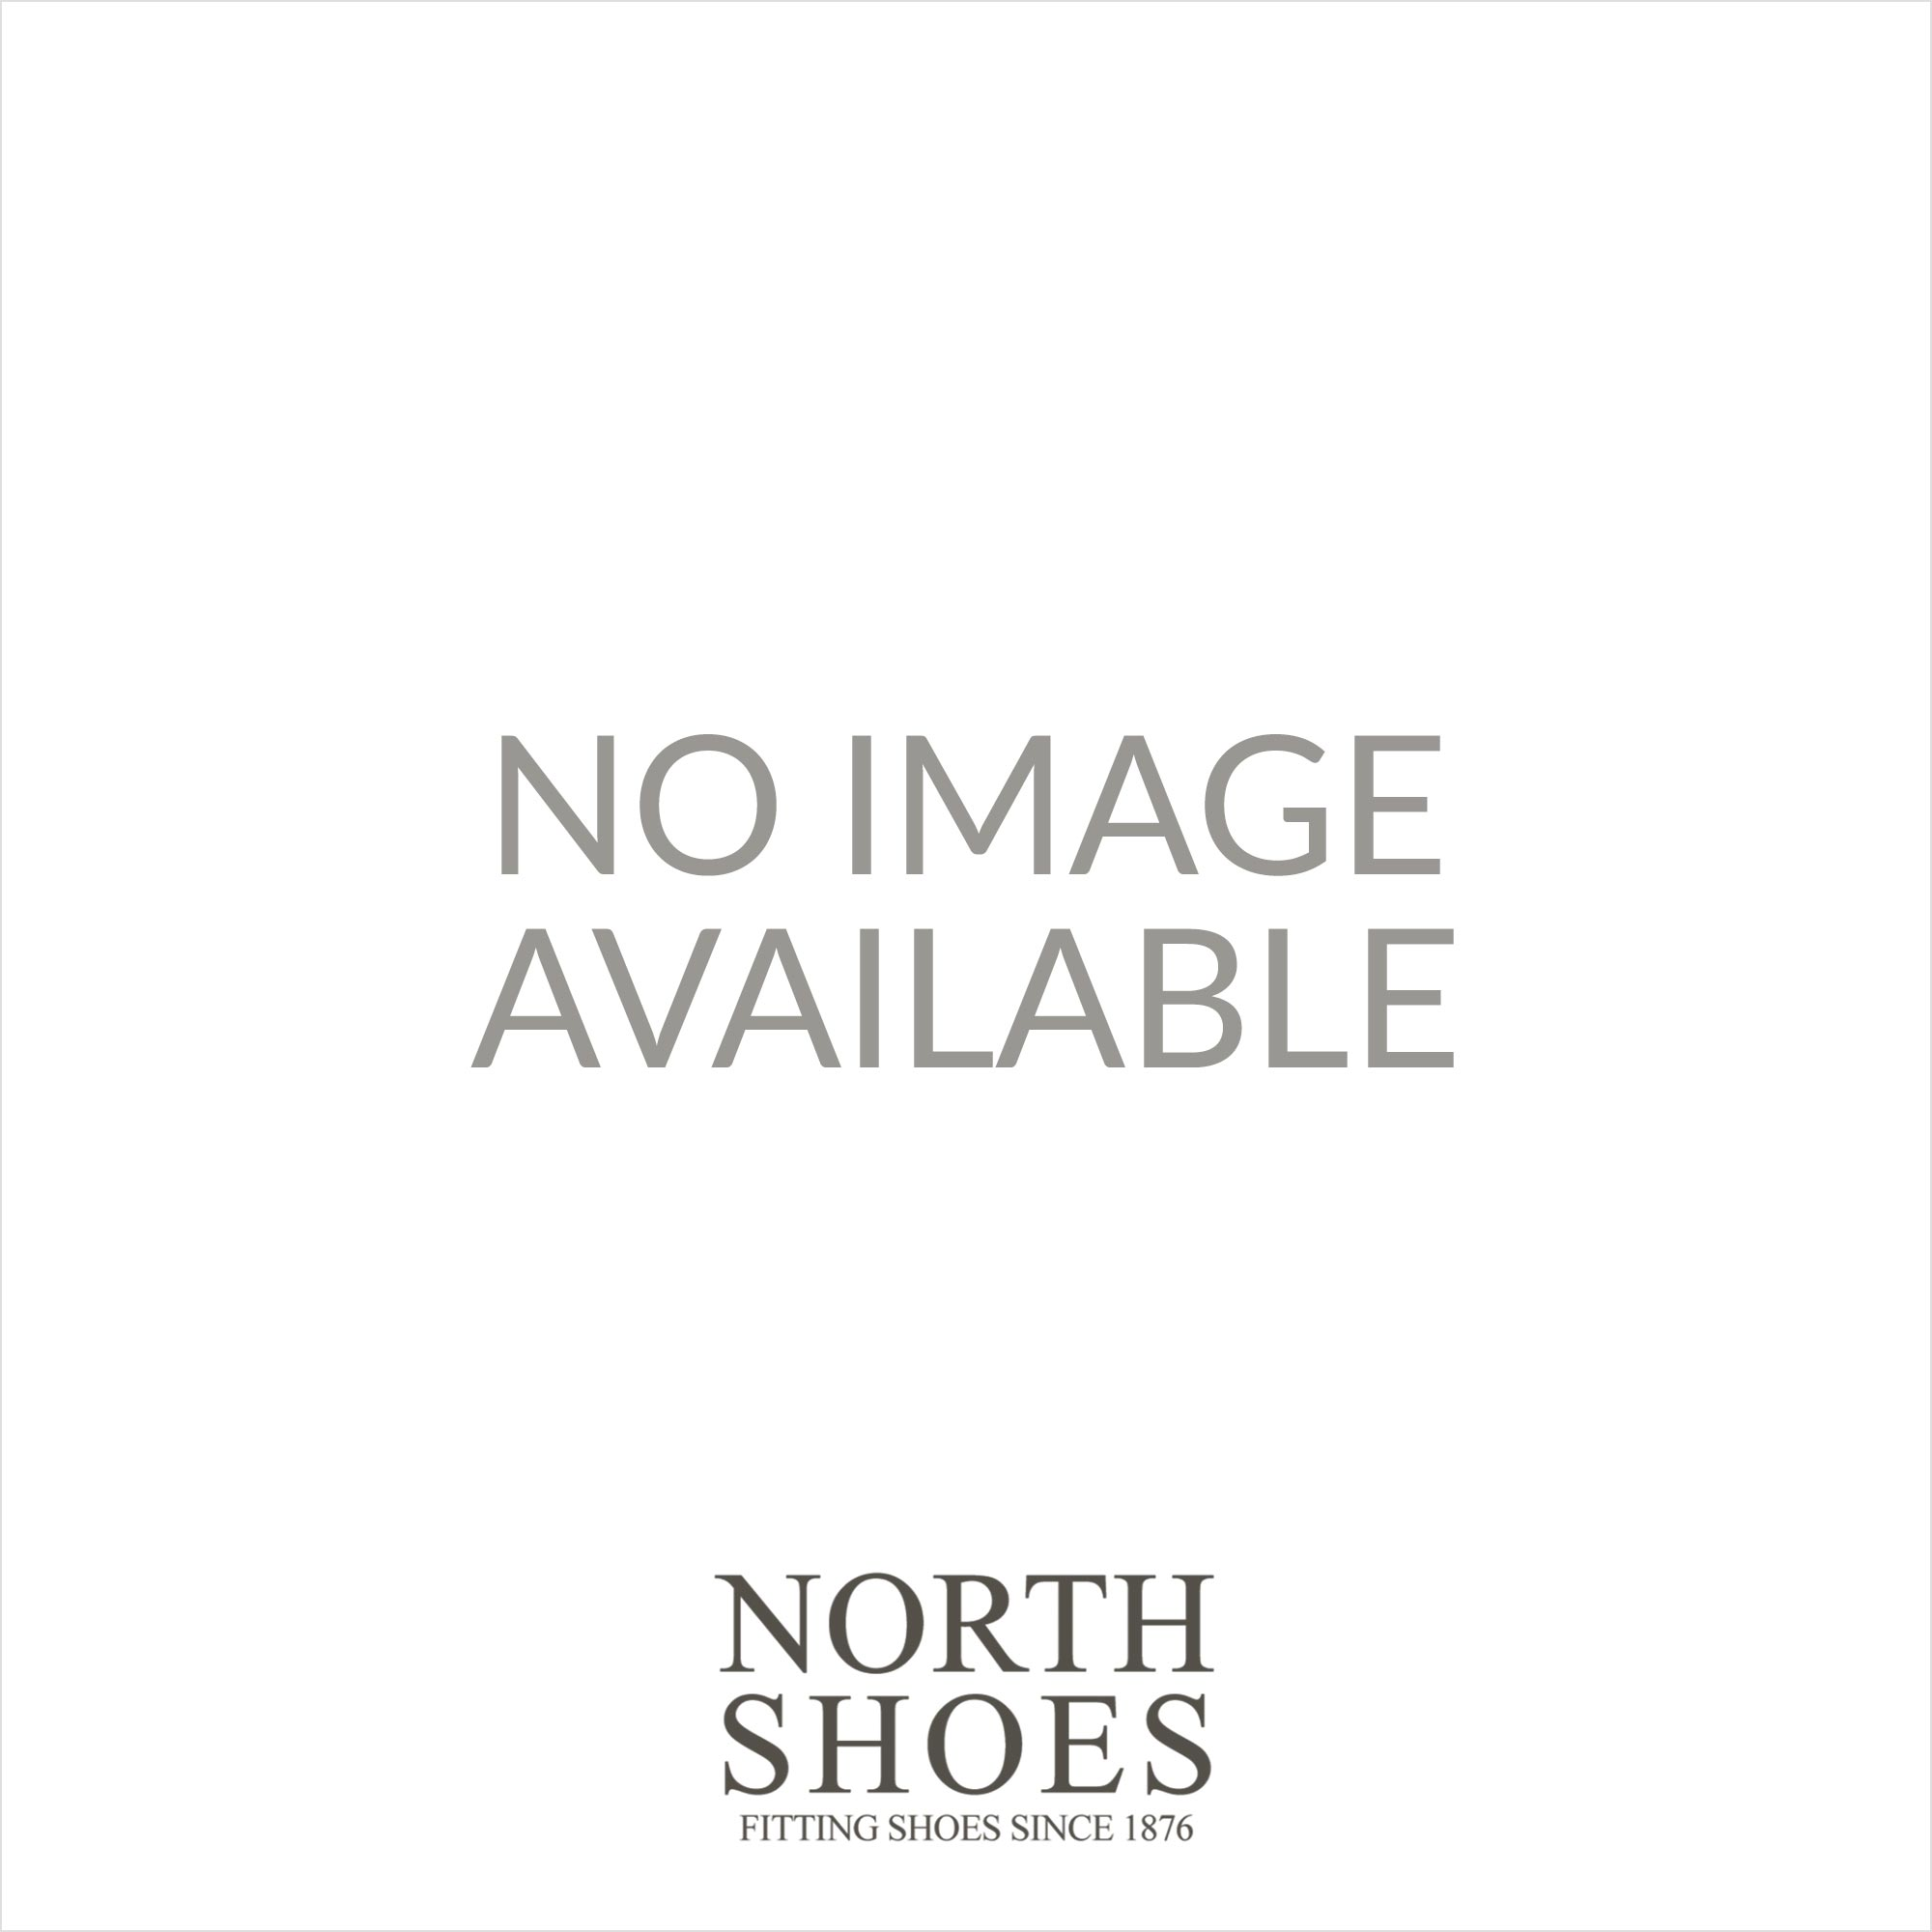 Atwood VKI56XY Blue Canvas Unisex Lace Up Shoes